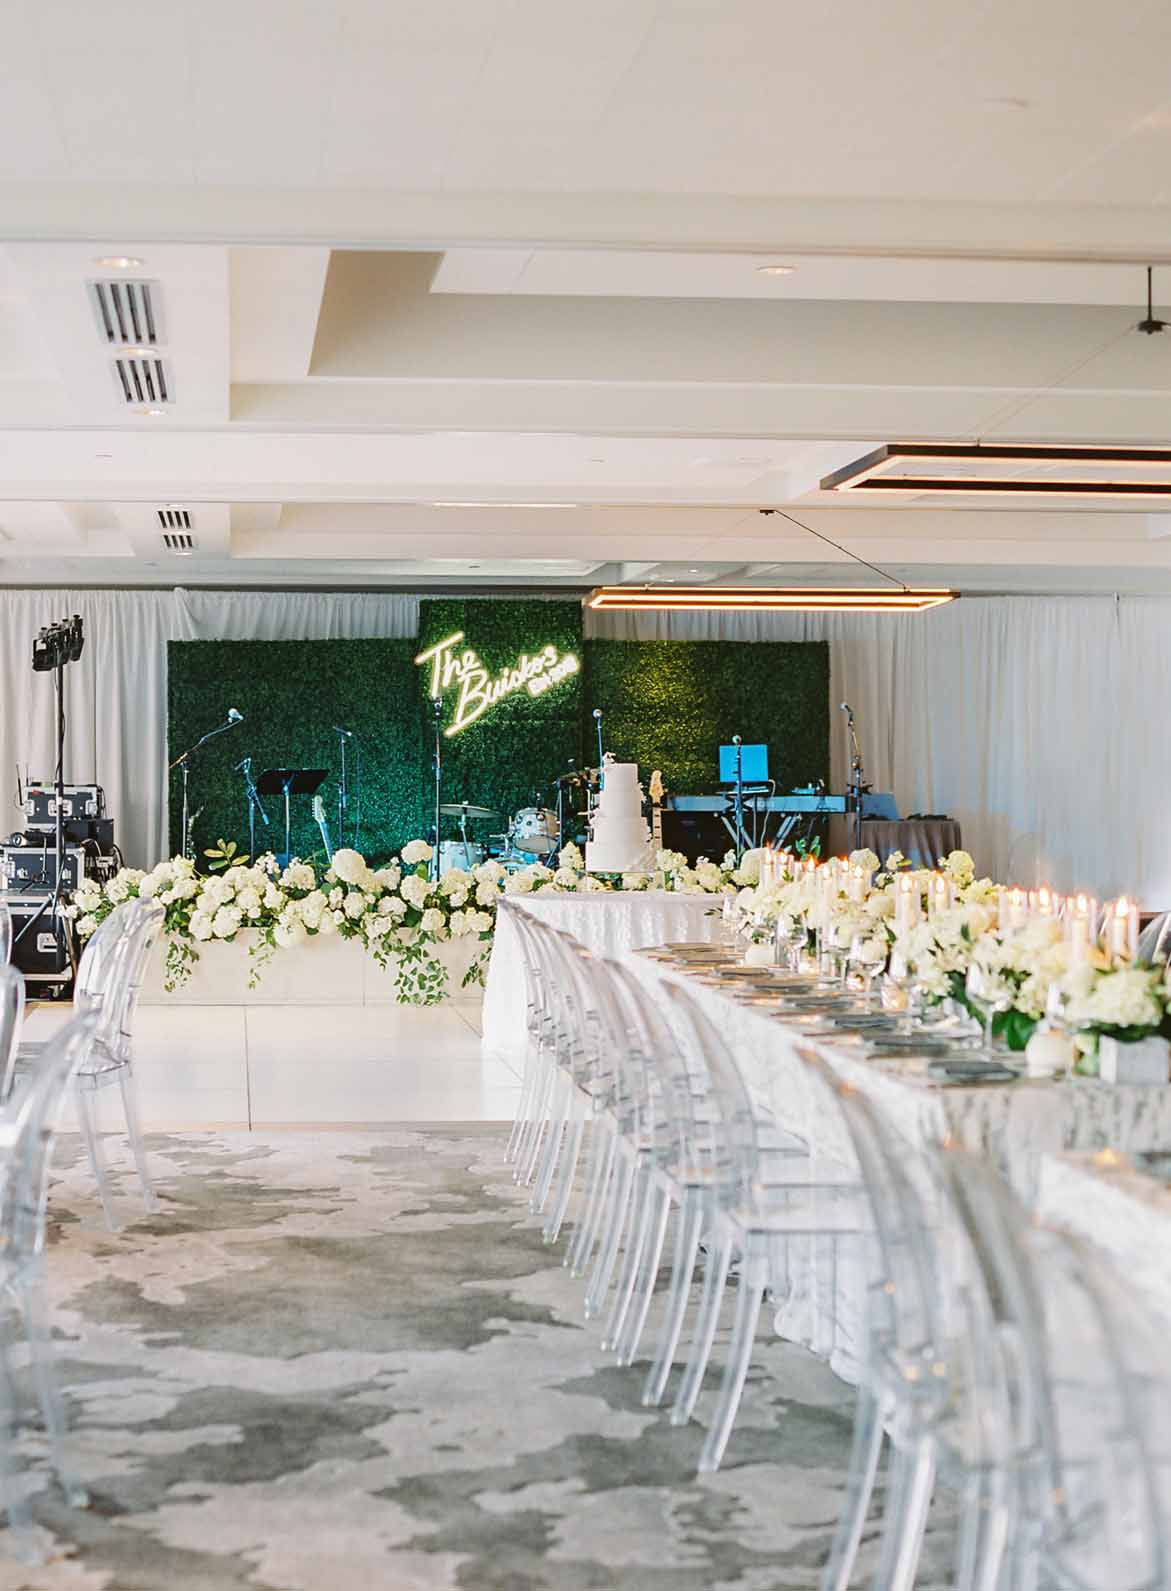 Overlake Country Club Wedding: long guest tables, clear lucite chairs, greenery wall band backdrop, custom neon wedding signage